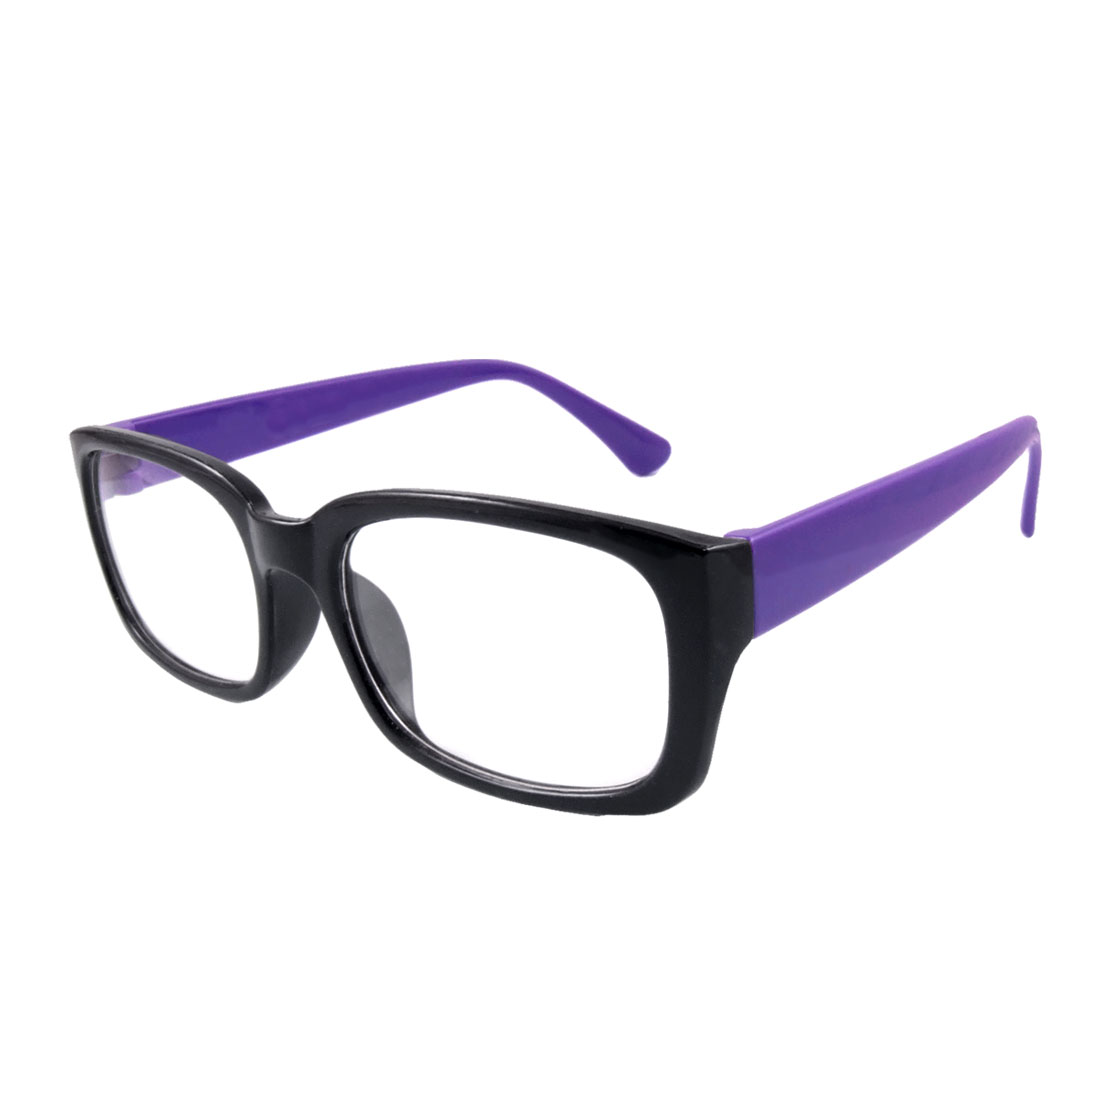 Women Rectangular Clear Lens Black Full Frame Purple Arms Plain Glasses